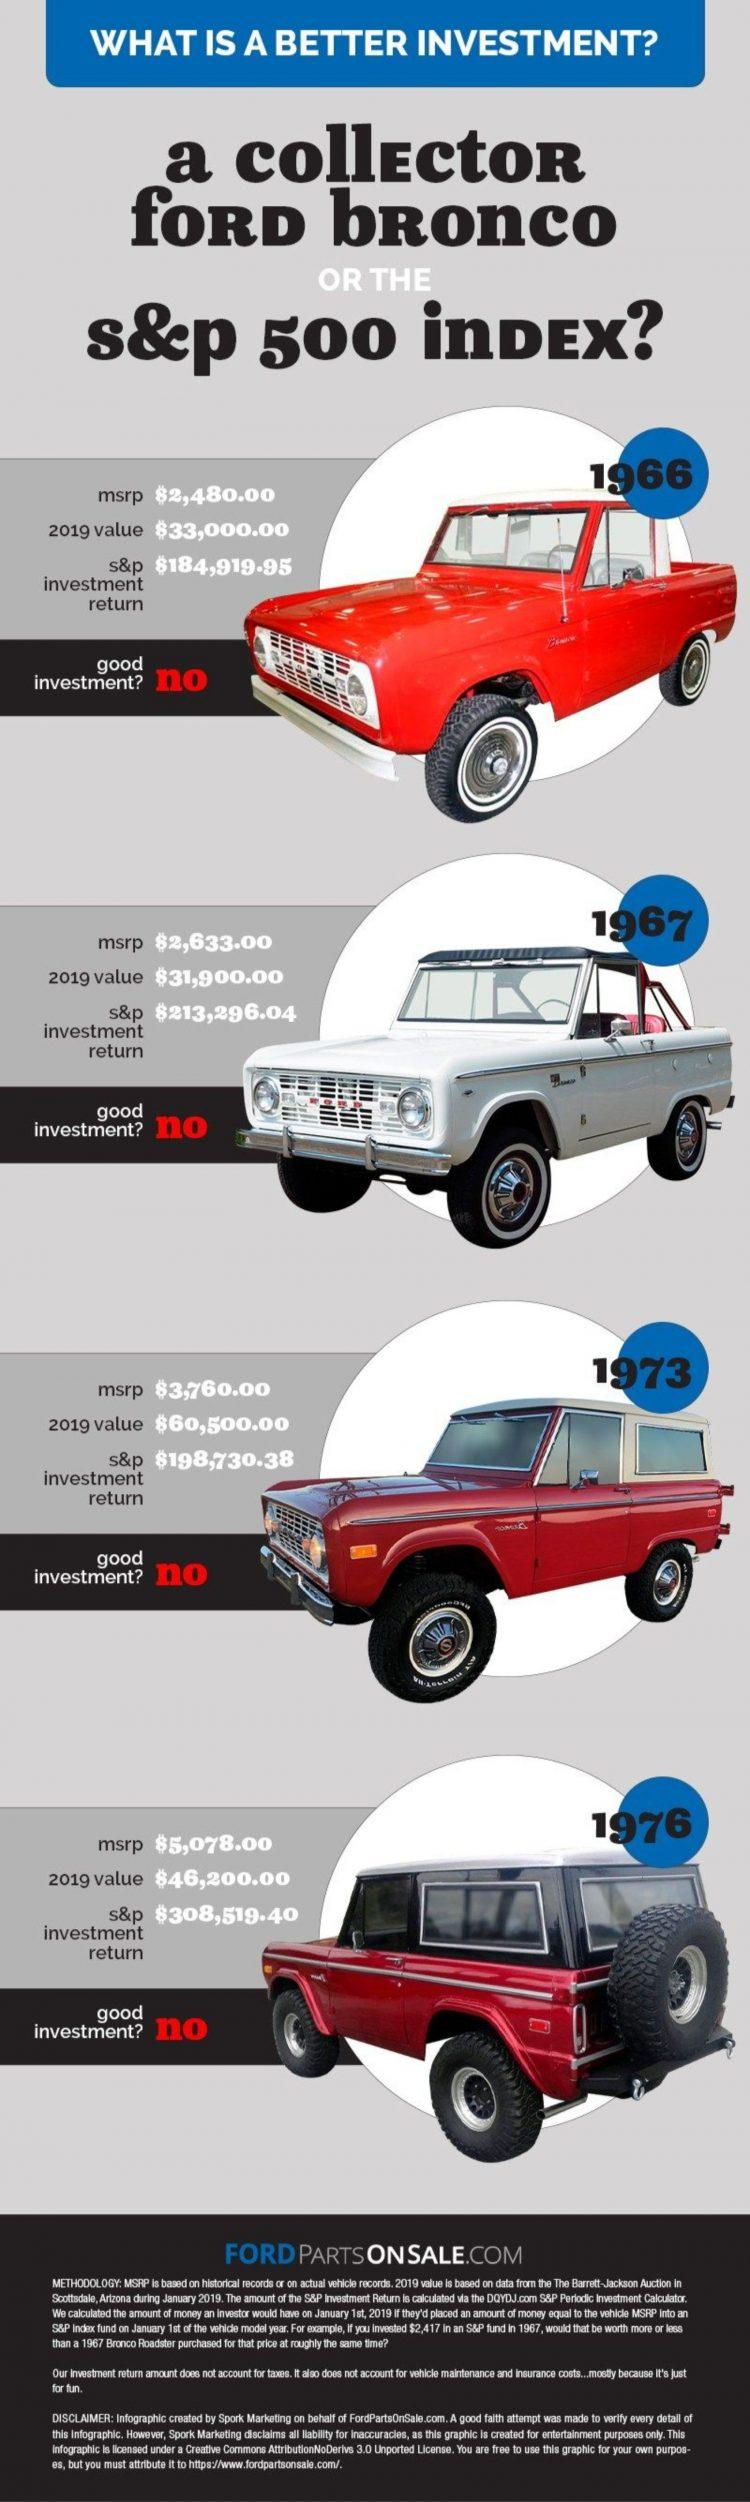 ford bronco investment